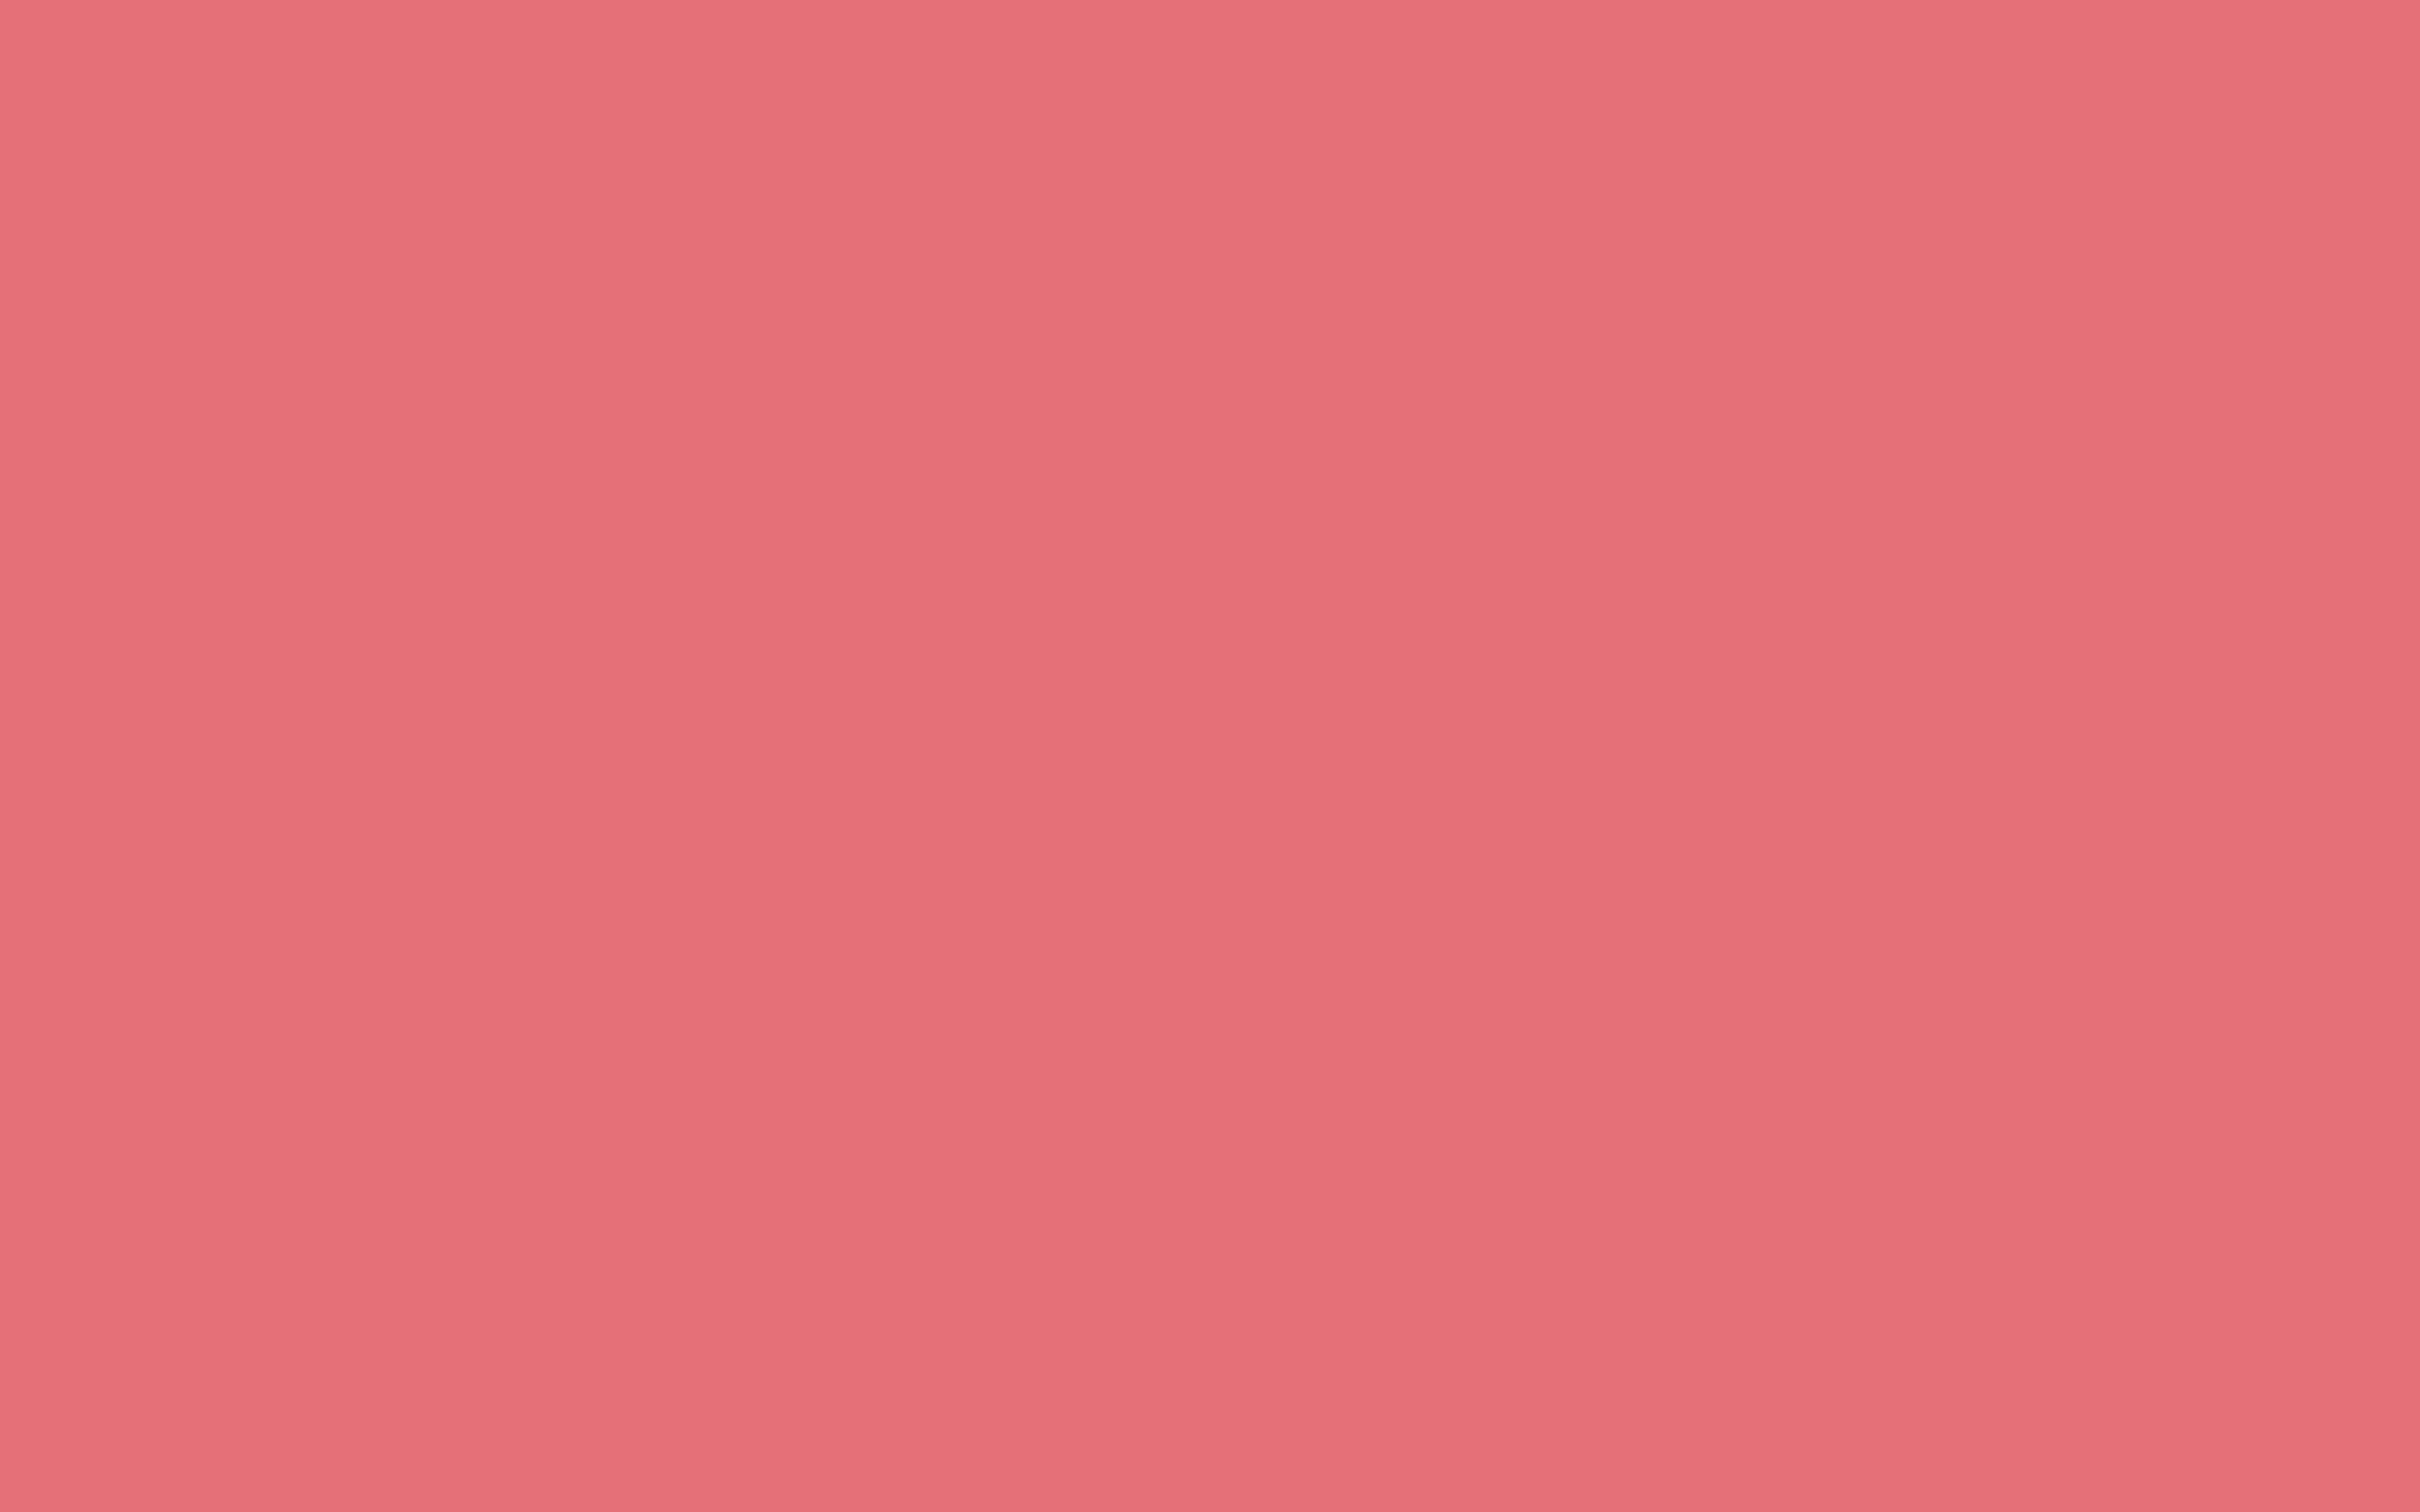 2560x1600 Candy Pink Solid Color Background